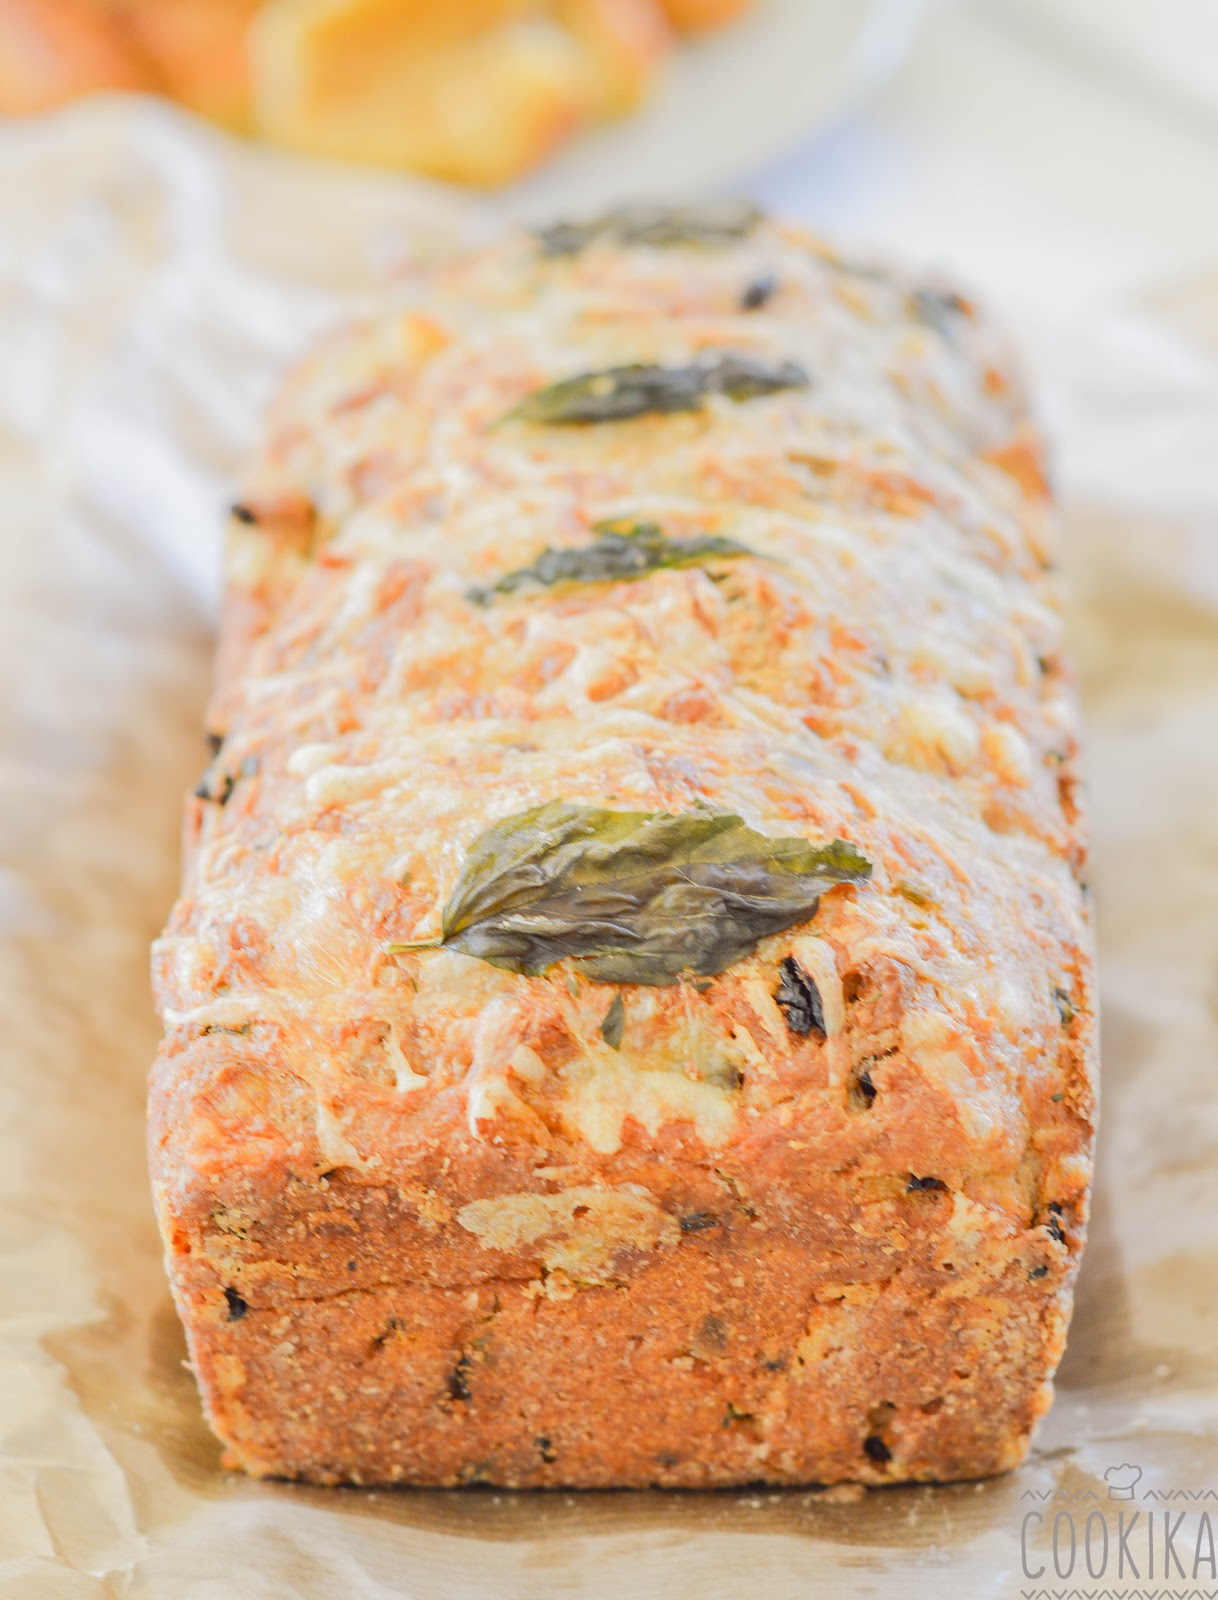 Cake with Sundried Tomatoes and Basil